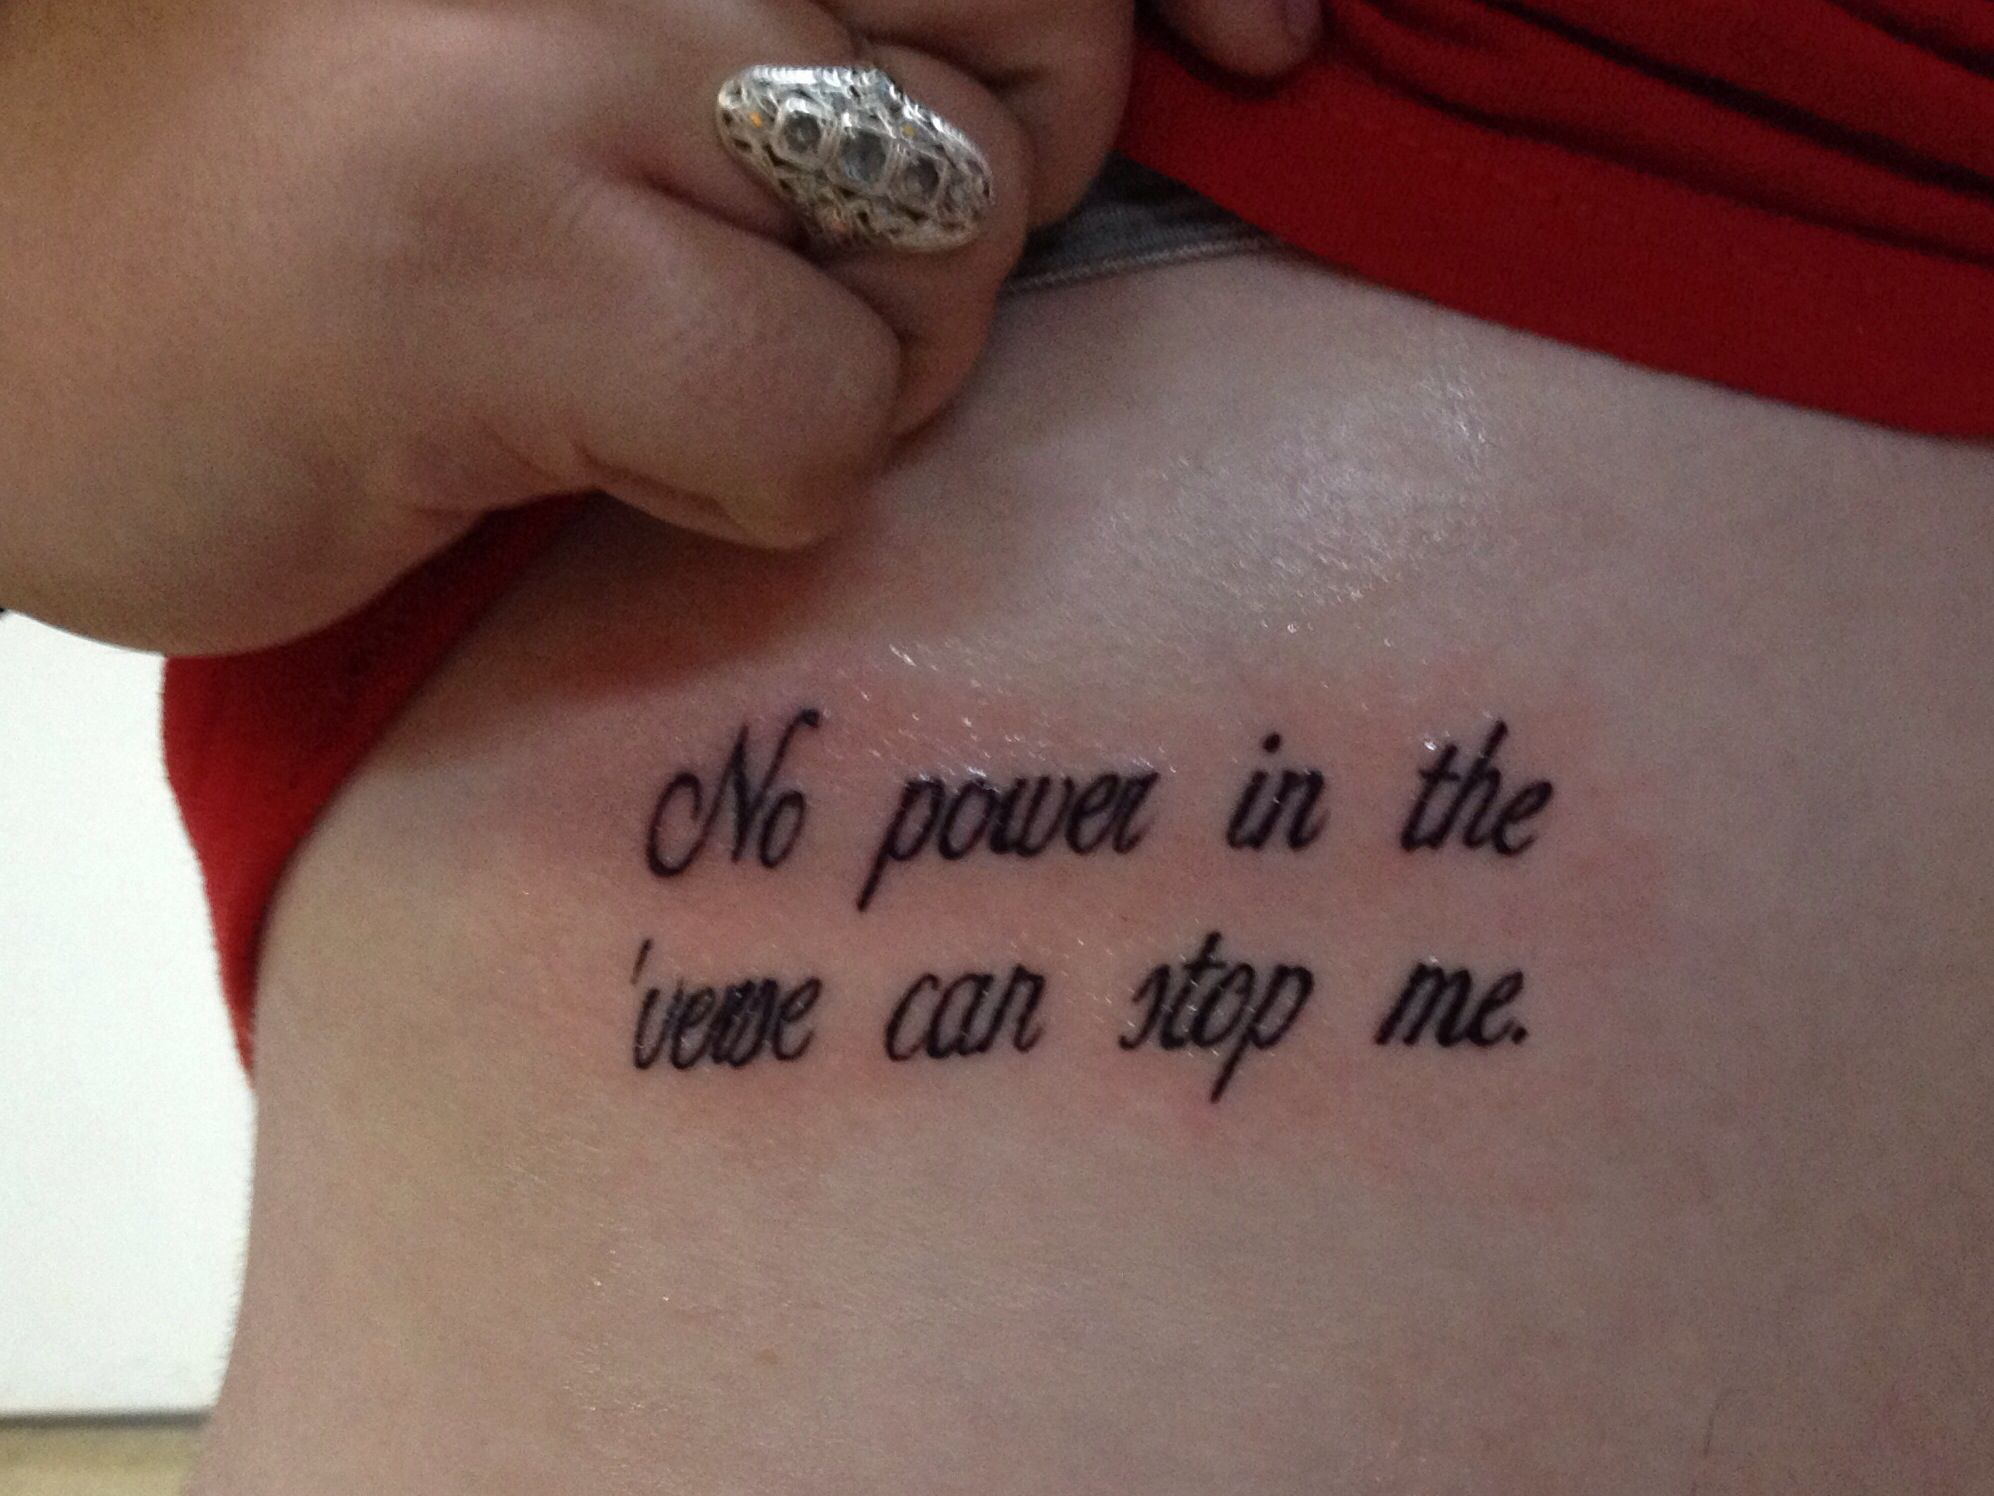 My second tattoo browncoat tattoo no power in the verse